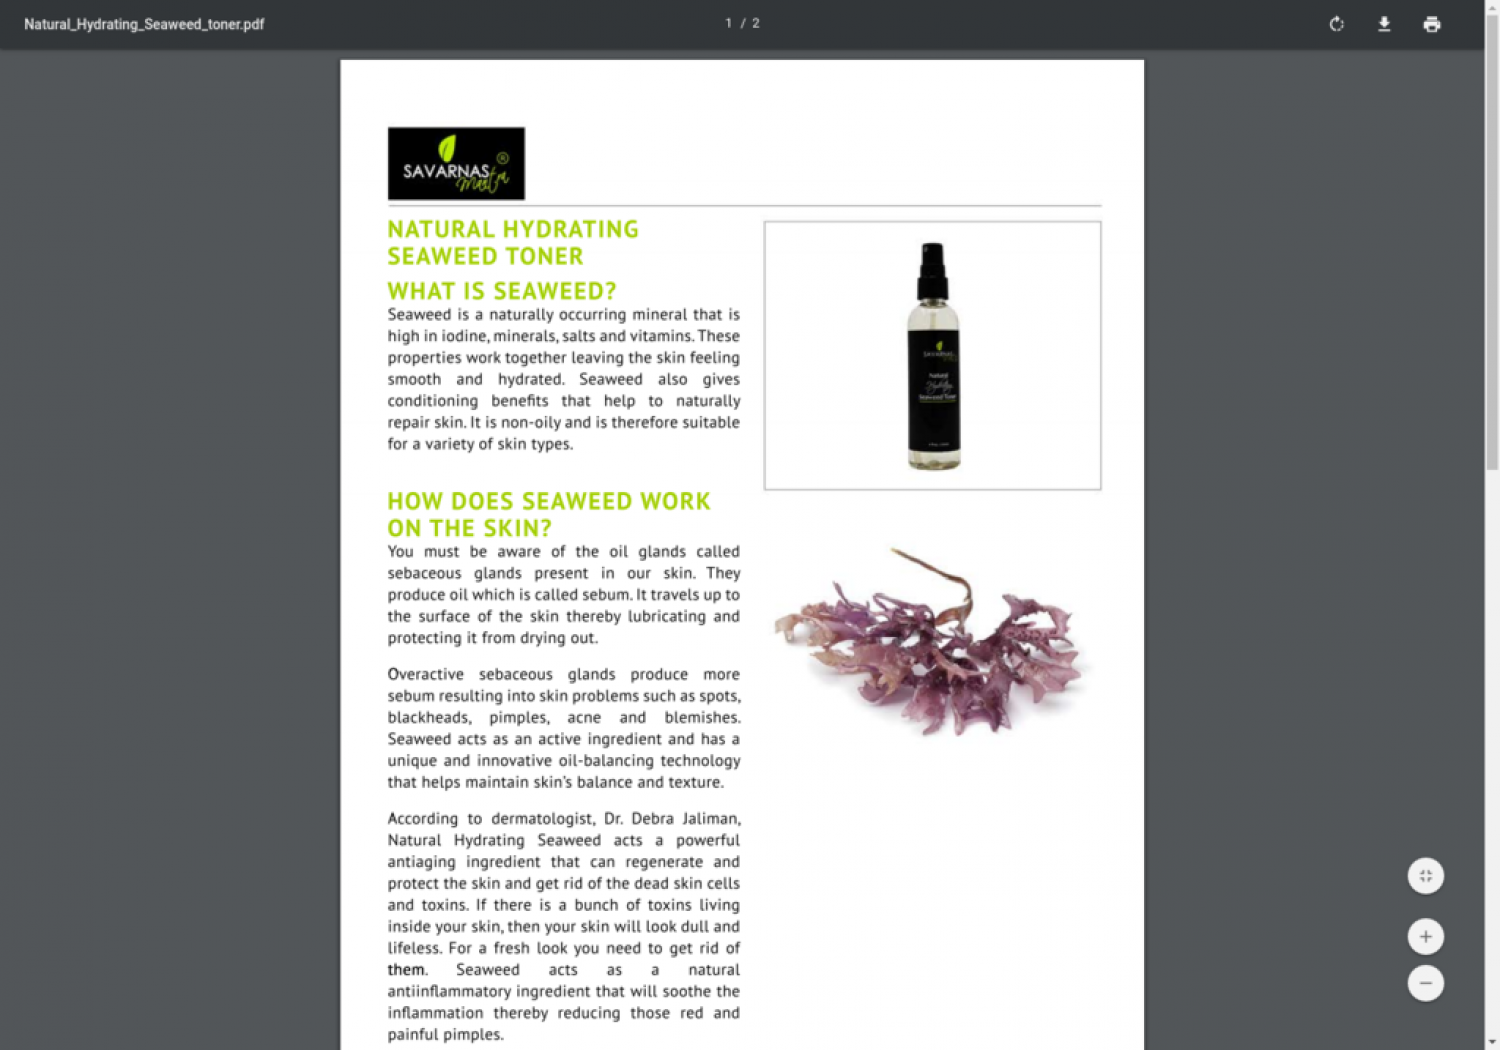 Natural Hydrating Seaweed Toner Shop Online Infographic